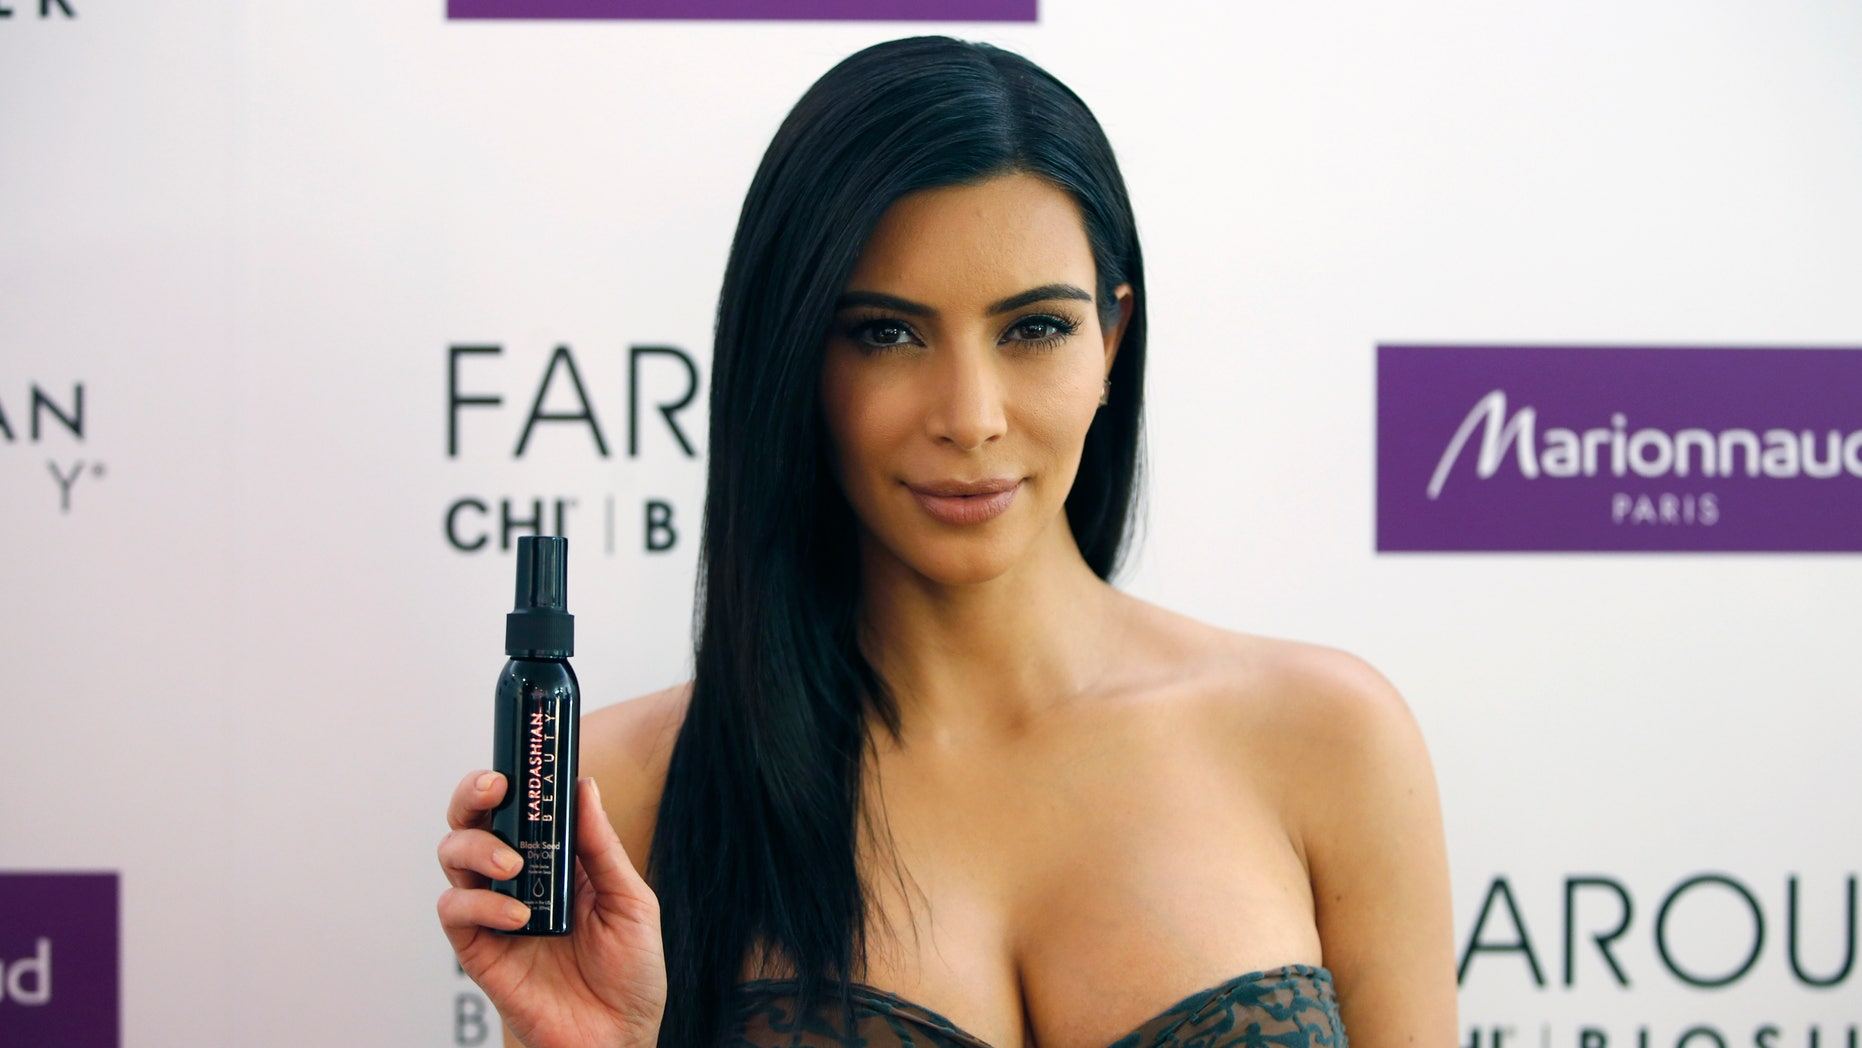 April 15, 2015. TV star Kim Kardashian poses as she presents her Kardashian Beauty Hair collection for Marionnaud at the flagship store on the Champs-Elysees in Paris.